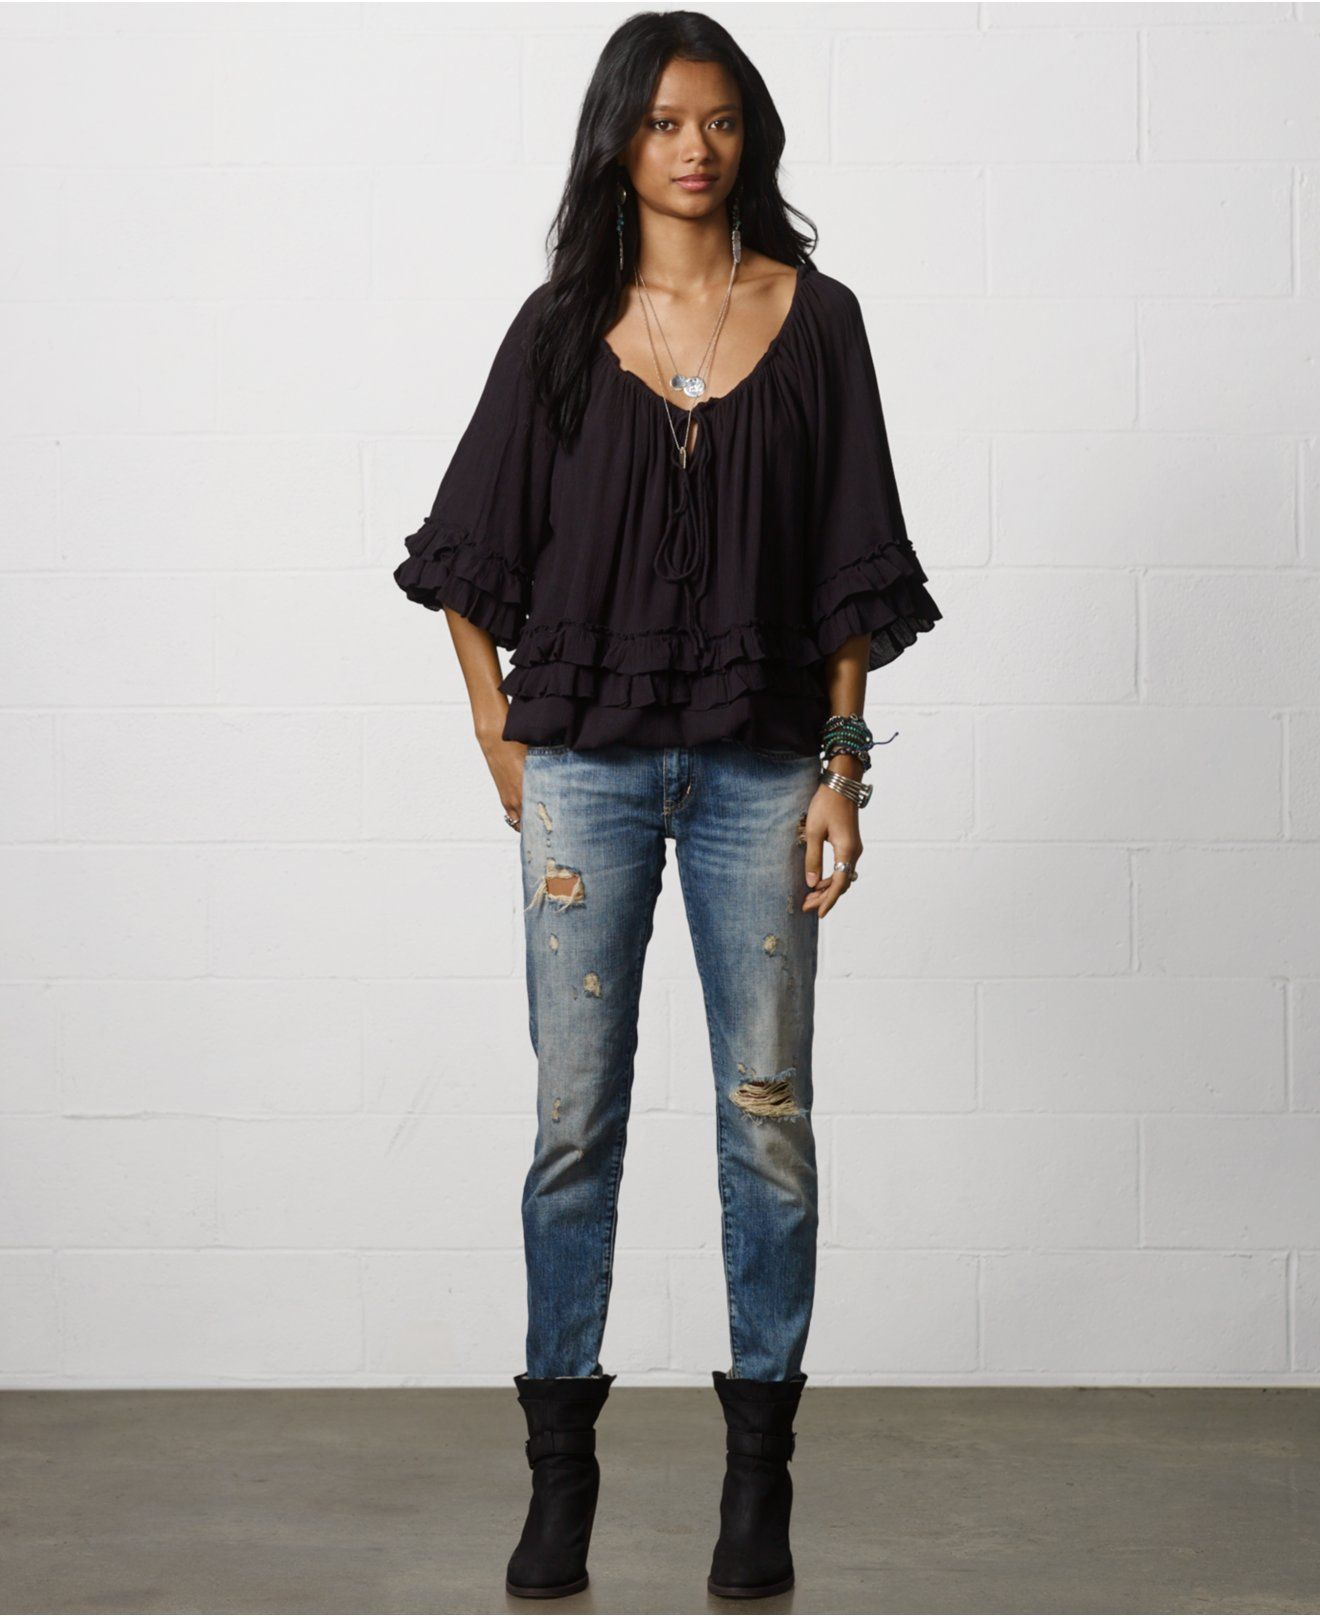 d858ba47ae149d Denim & Supply Ralph Lauren Ruffled Peasant Top - Tops - Women - Macy's  change jeans and add ugg's or knee high boots